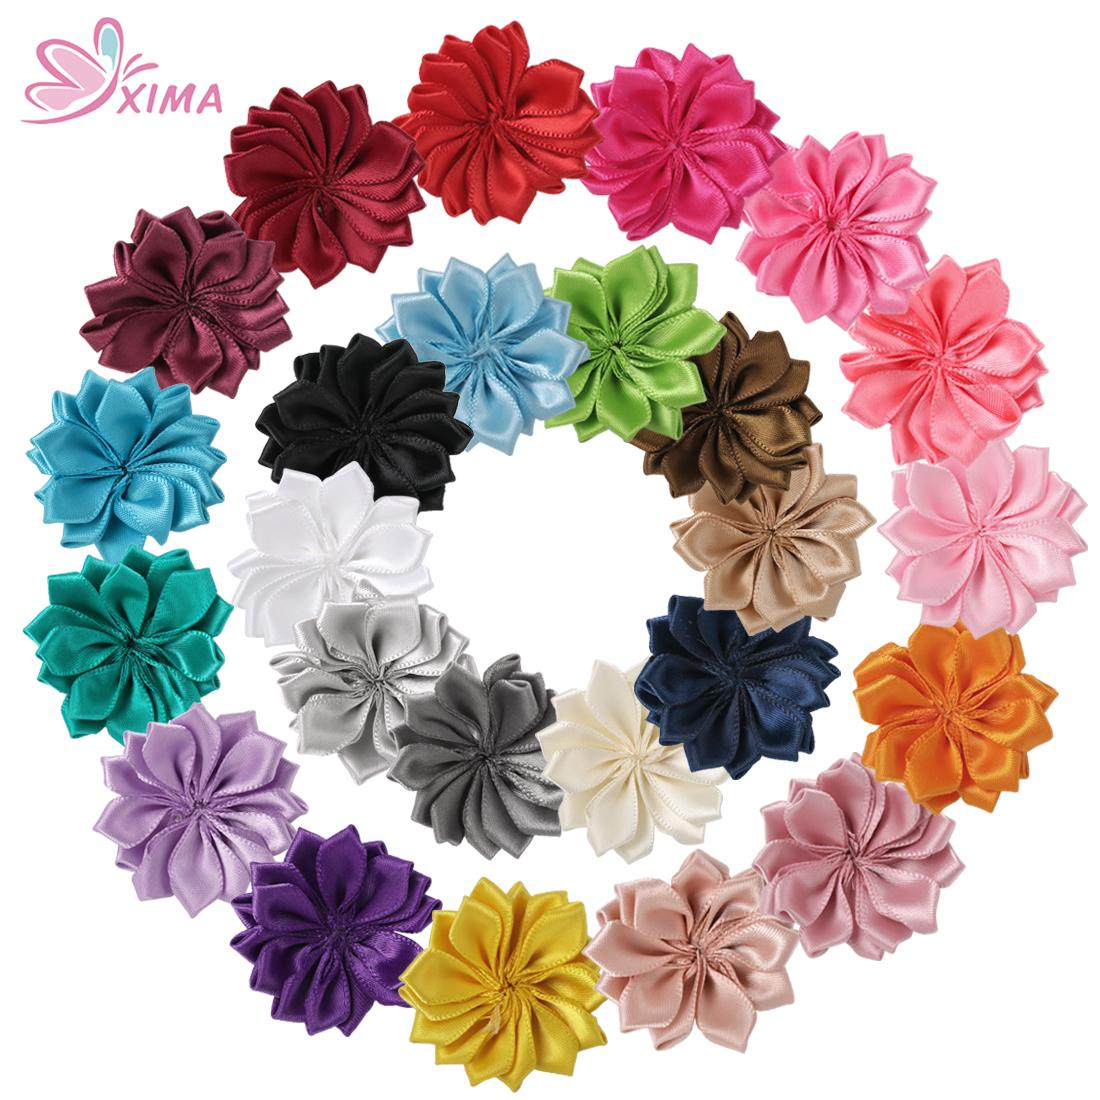 Xima Mini Polyester Ribbon Flowers Handmade Diy Hair Flower For